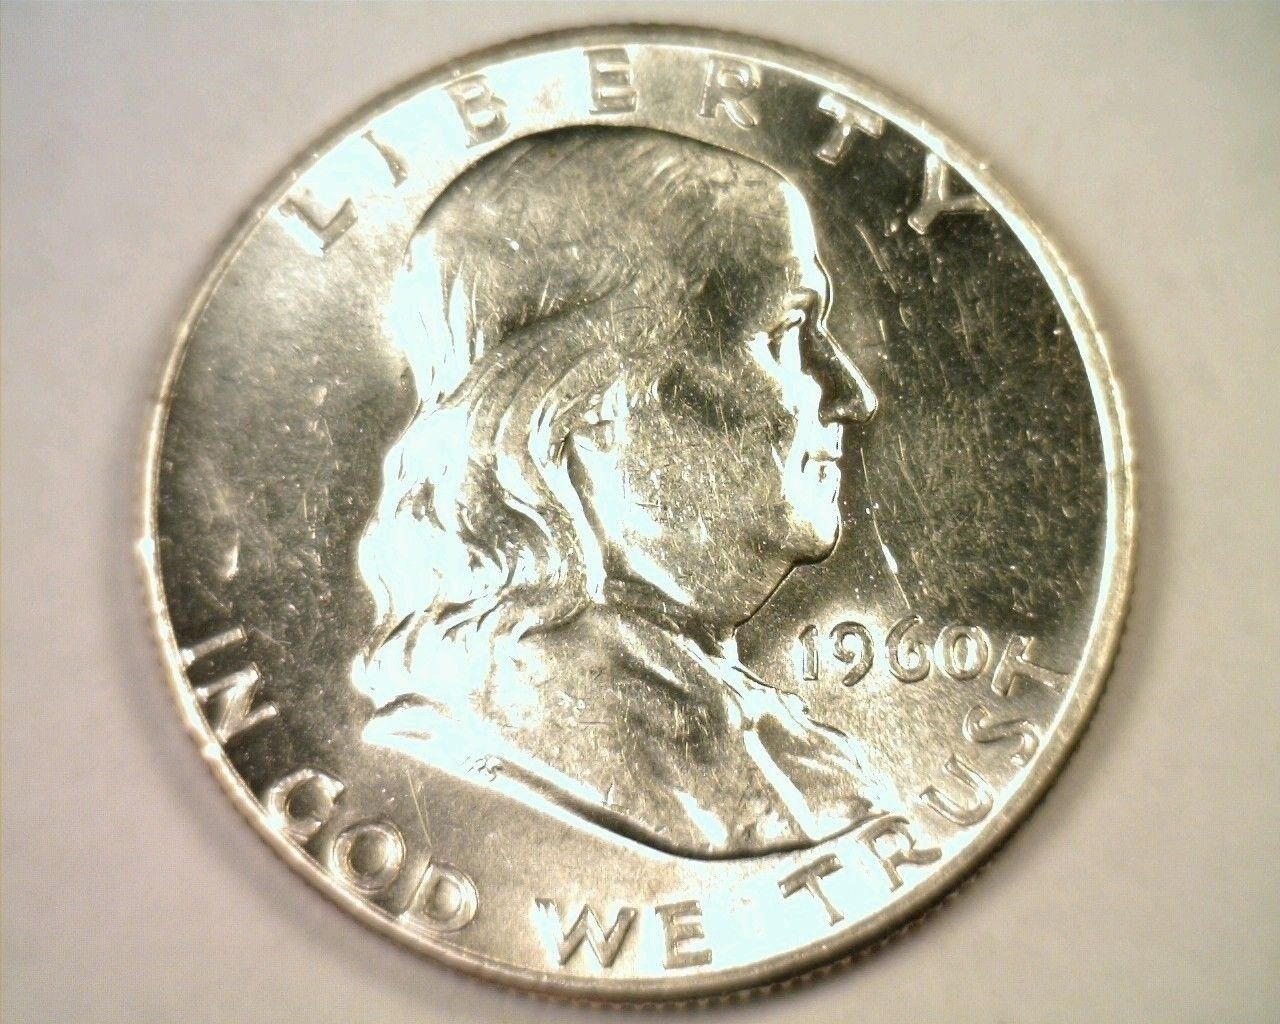 Primary image for 1960 FRANKLIN HALF DOLLAR UNCIRCULATED UNC. NICE ORIGINAL COIN FROM BOBS COINS